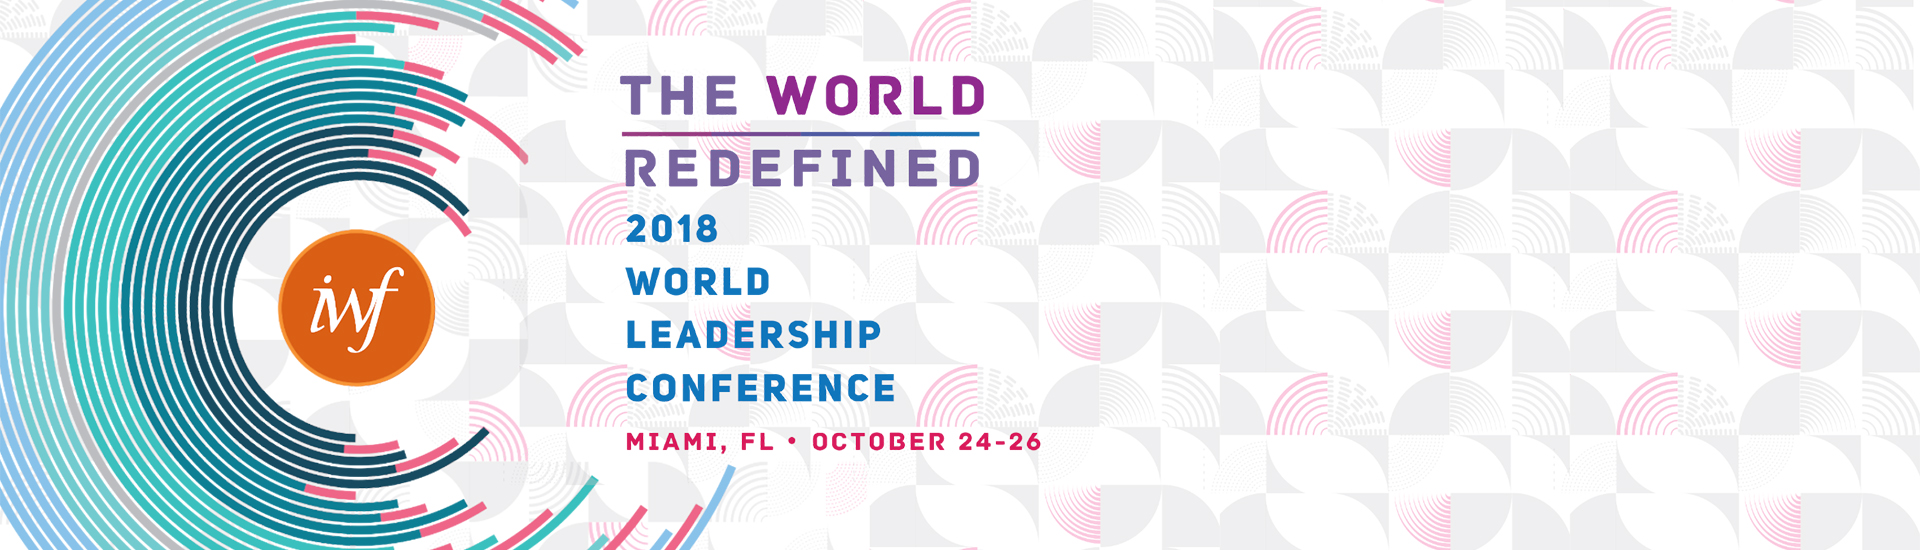 2018 World Leadership Conference